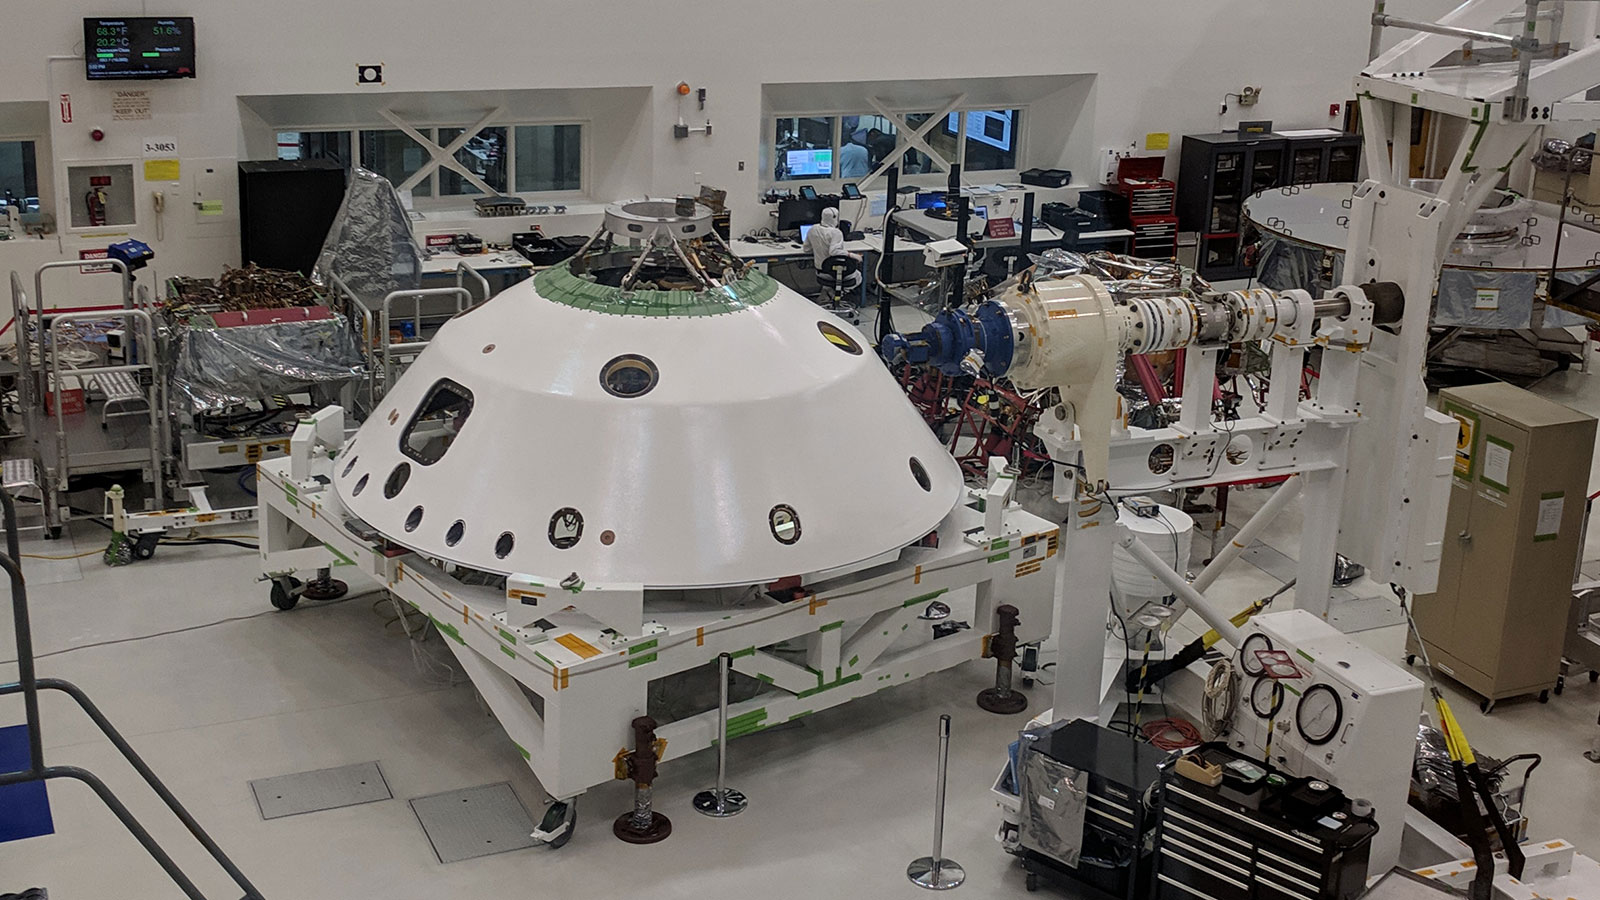 slide 1 - With the backshell that will help protect the Mars 2020 rover during its descent into the Martian atmosphere visible in the foreground, a technician on the project monitors the progress of Systems Test 1.